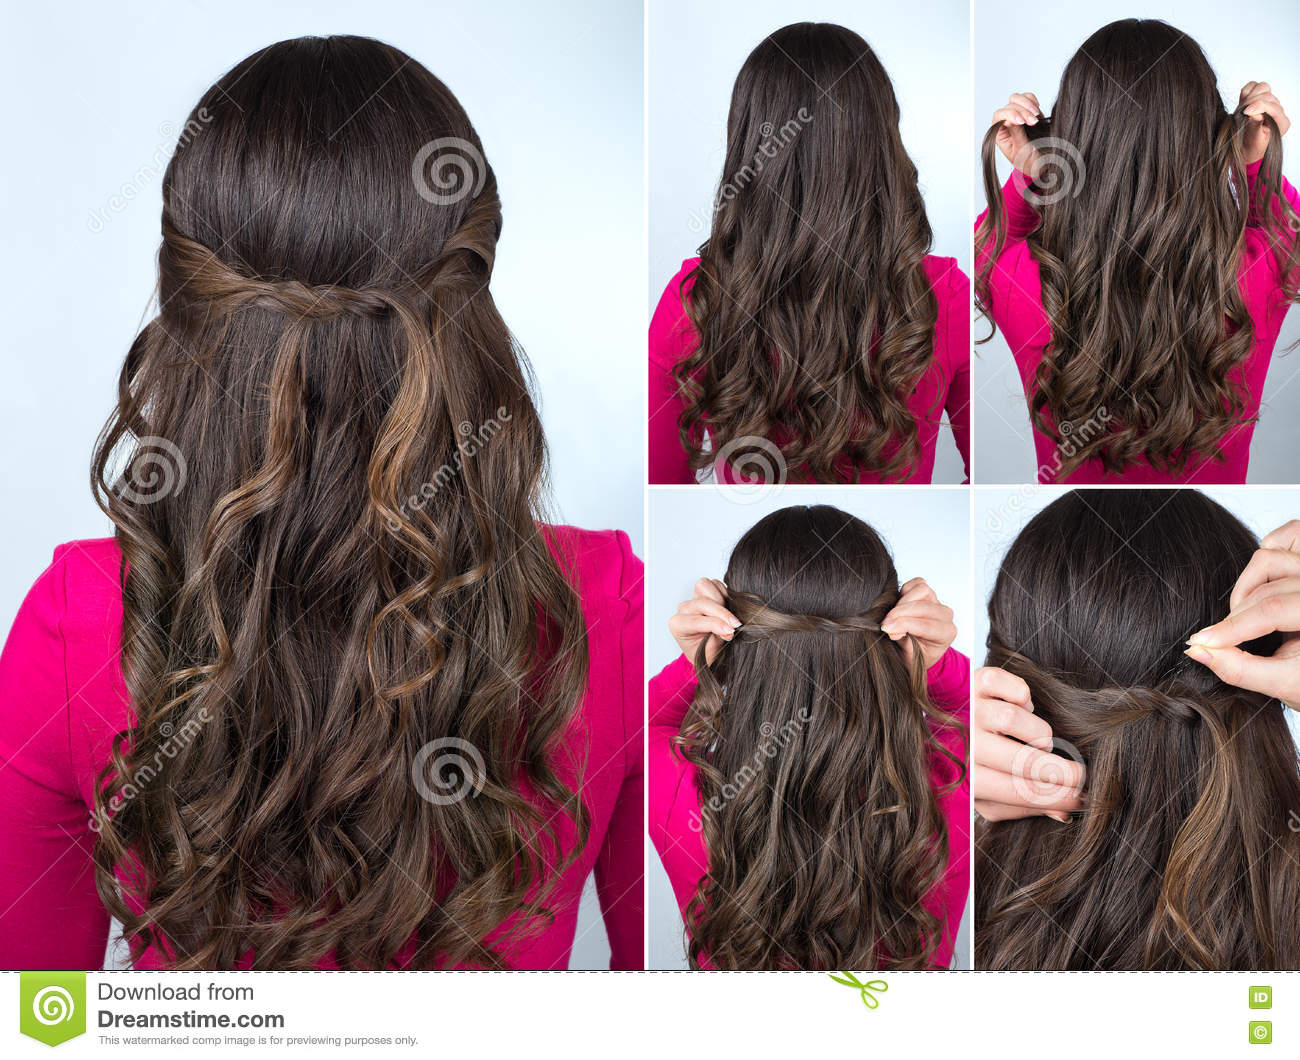 Knotted Hairstyle On Curly Hair Tutorial Stock Photo Image